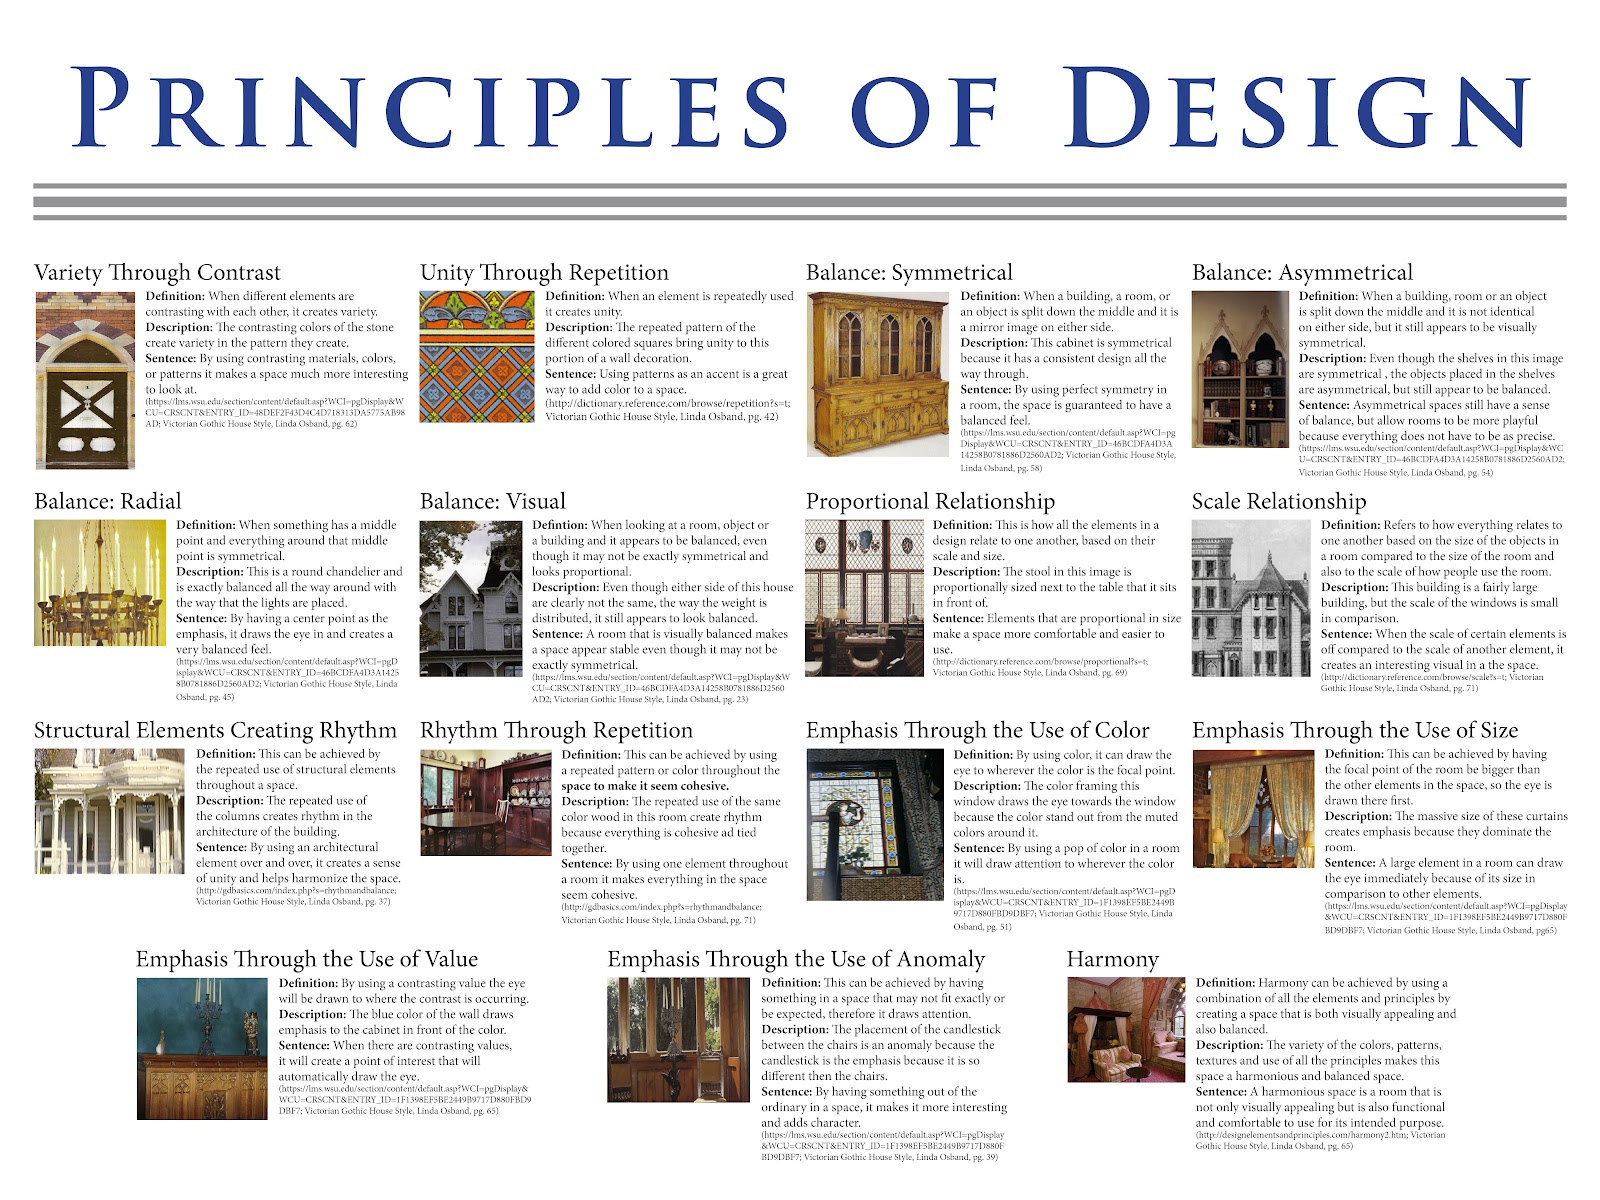 Seven Principles Of Design In Art : Annie borges design portfolio principles of